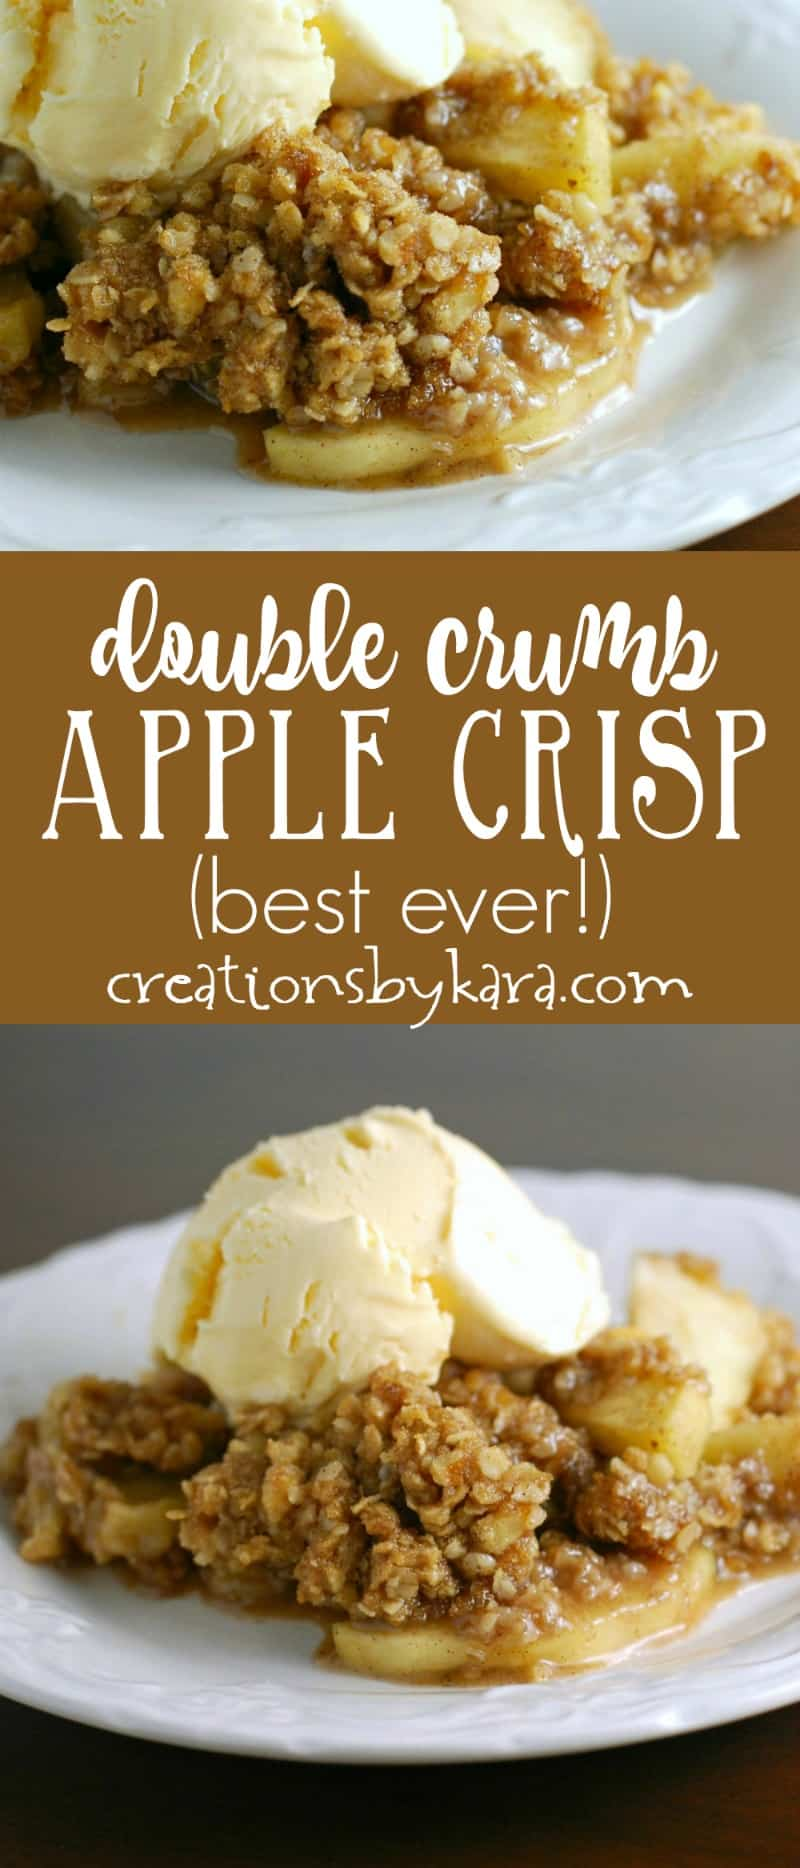 Perfect Apple Crisp - a double layer of cinnamon oat topping makes this the best apple crisp ever! You will love this fall recipe!